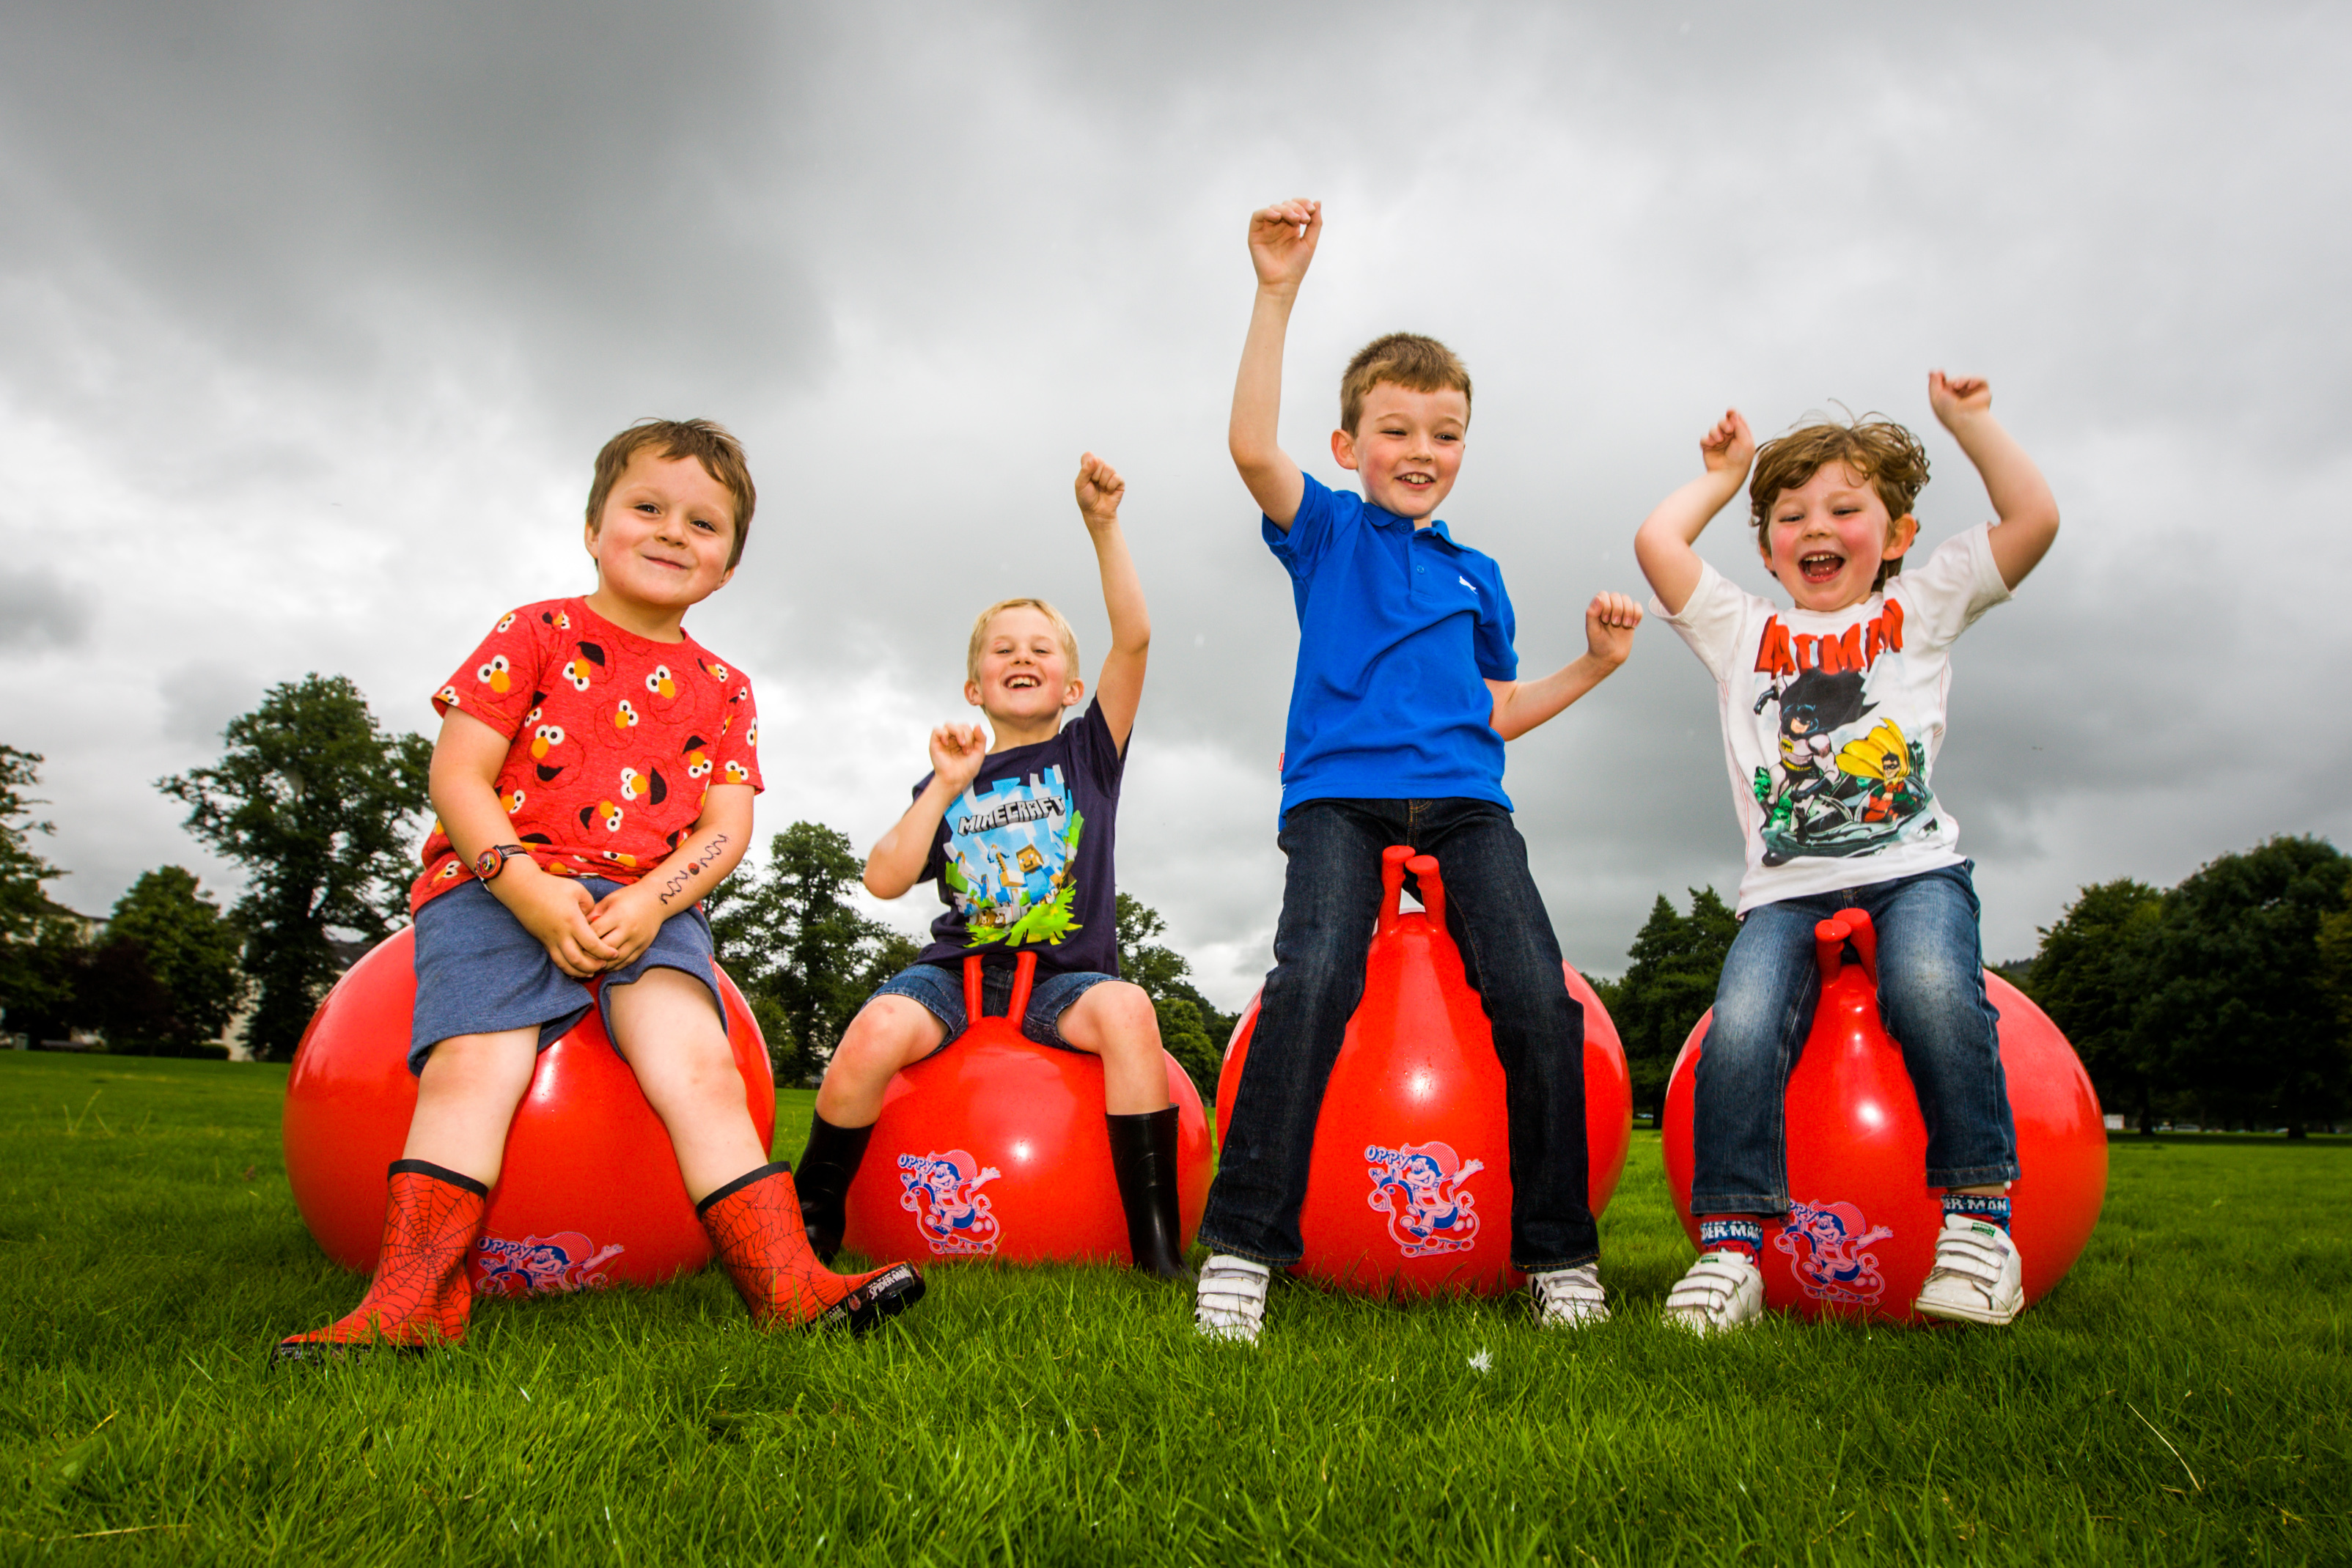 A hopping mad bunch - (left to right), Jamie McBride (aged 4), his brother Jack McBride (aged 8) alongside Sean Jamieson Braid (aged 8) and his brother Owen Jamieson Braid (aged 4).